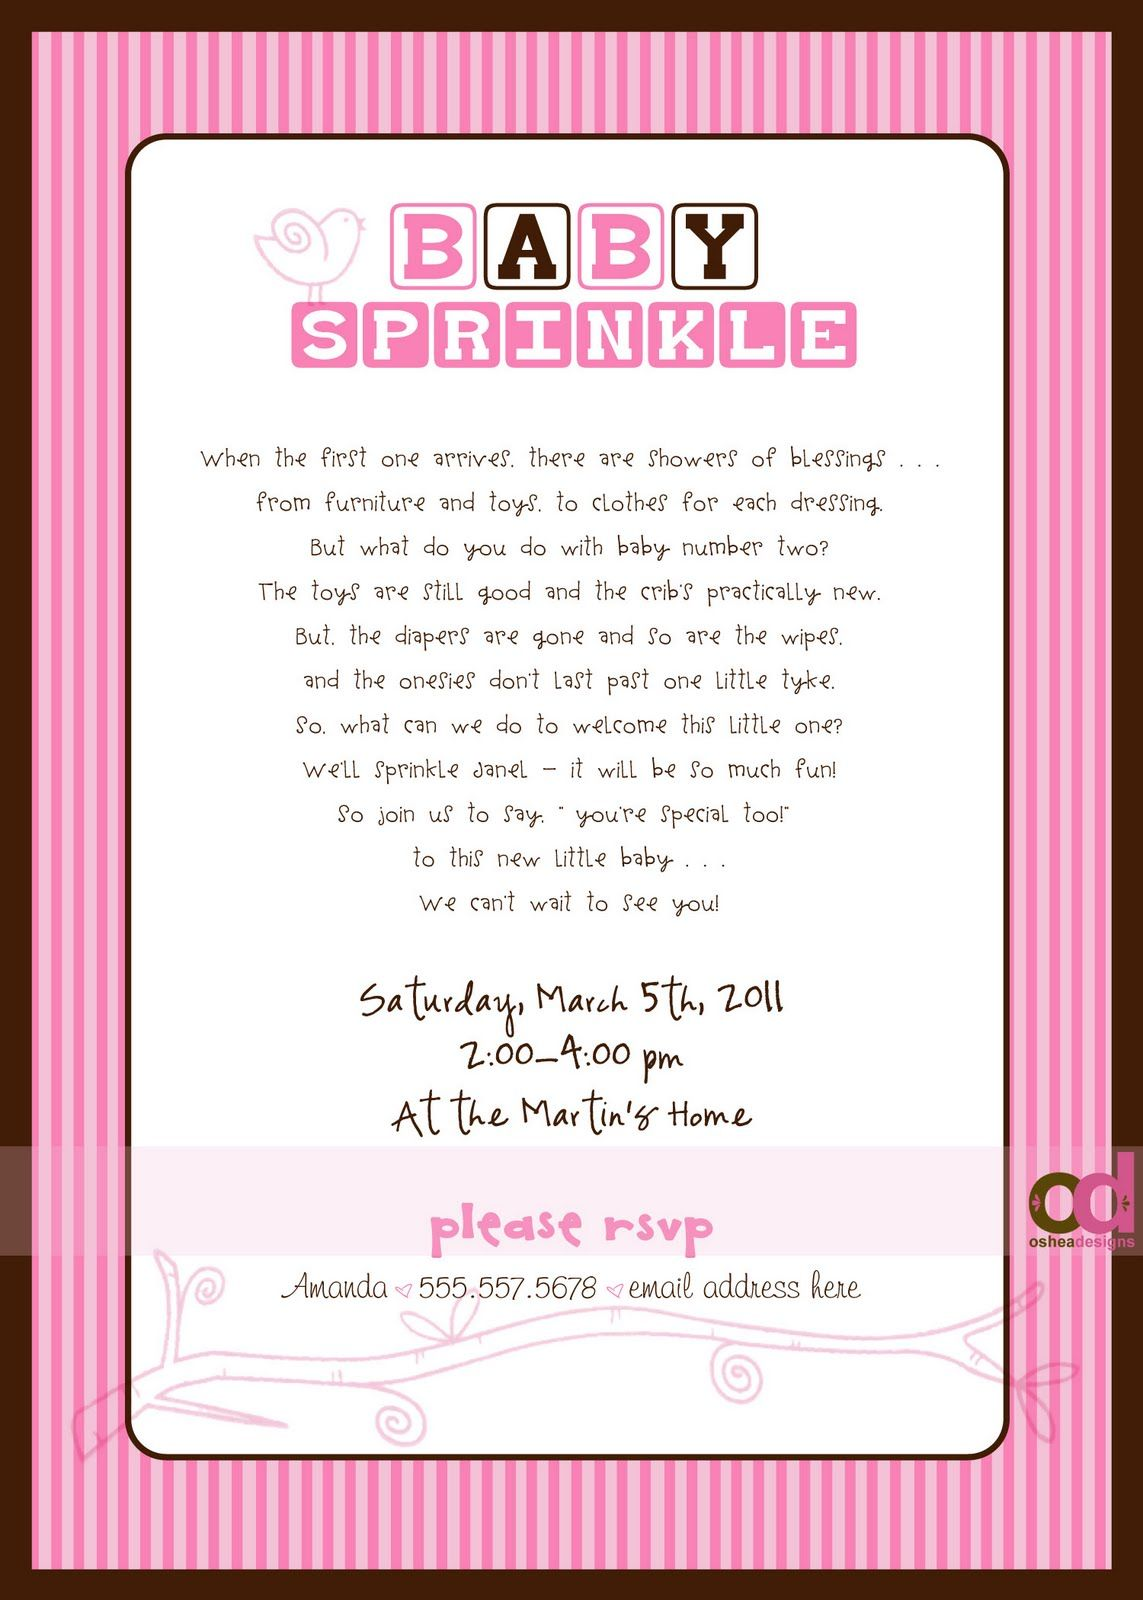 image invitation new of refrence baby born wording shower party sample